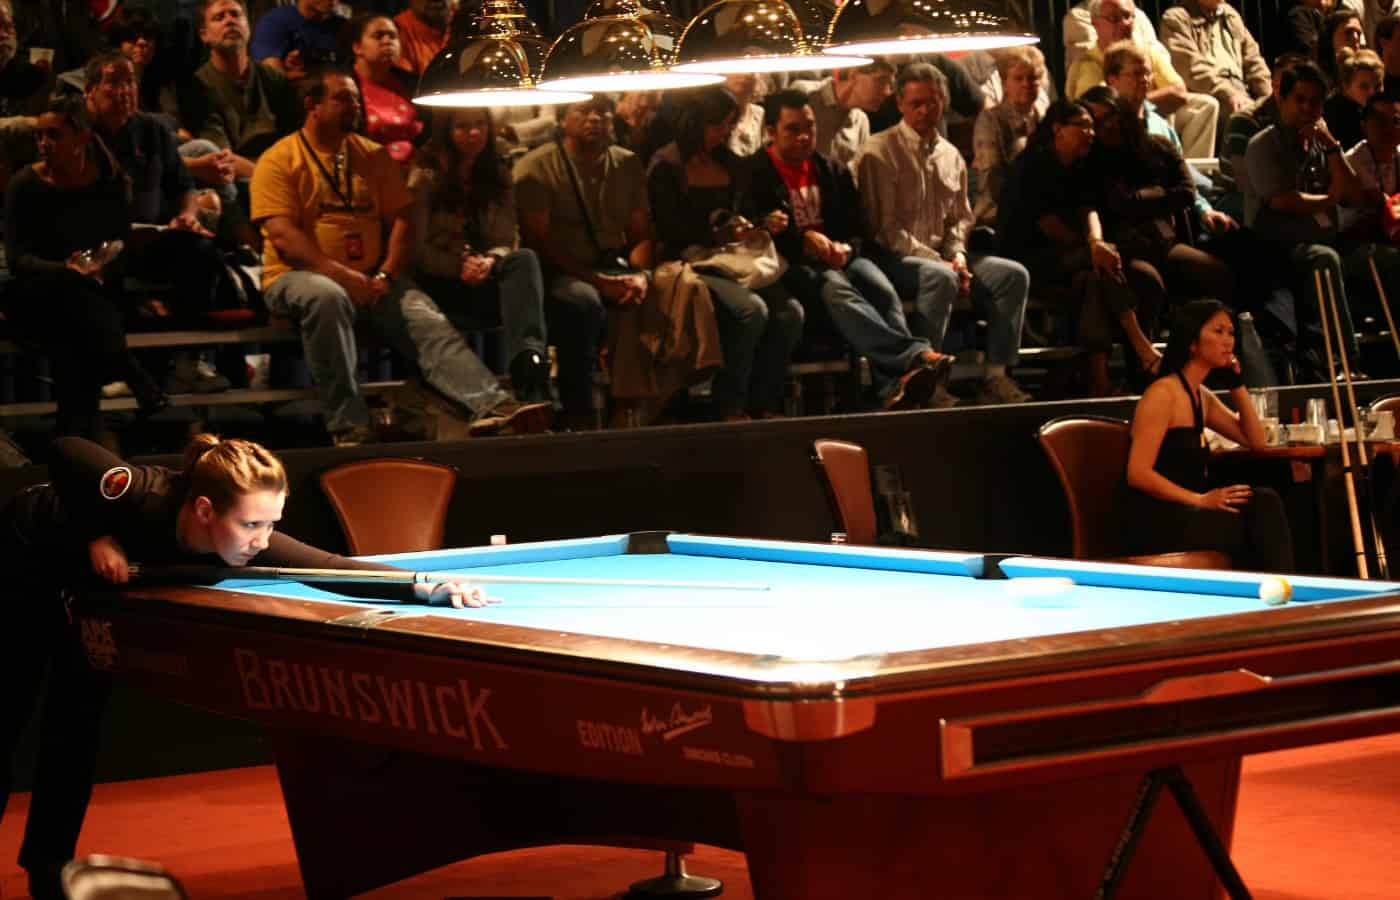 how to become a professional pool player